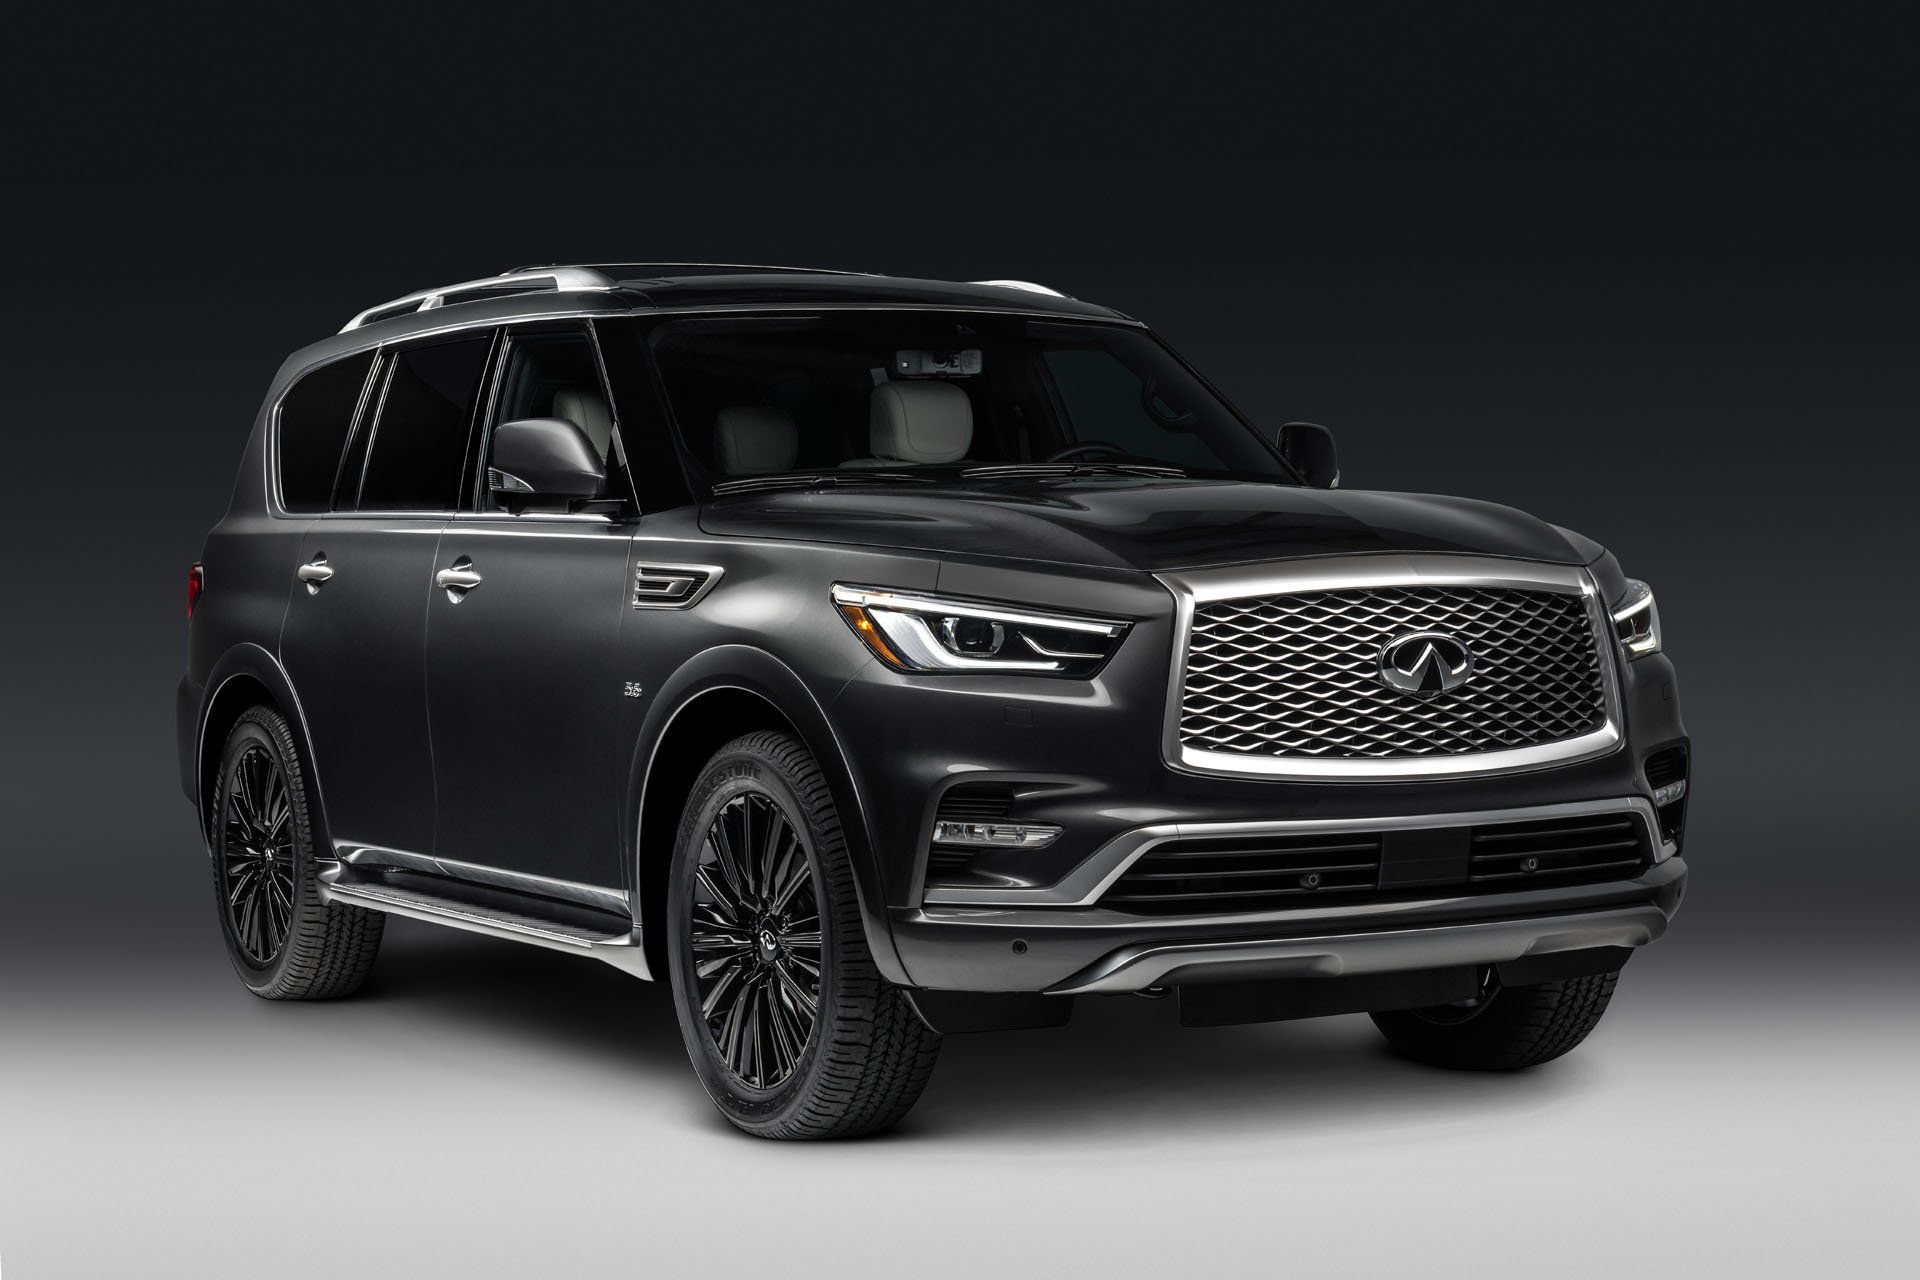 2019 Infiniti QX80: Changes, Design, Specs, Price >> 2019 Infiniti Qx80 Limited Is Priciest Yet At Over 90k Fresh